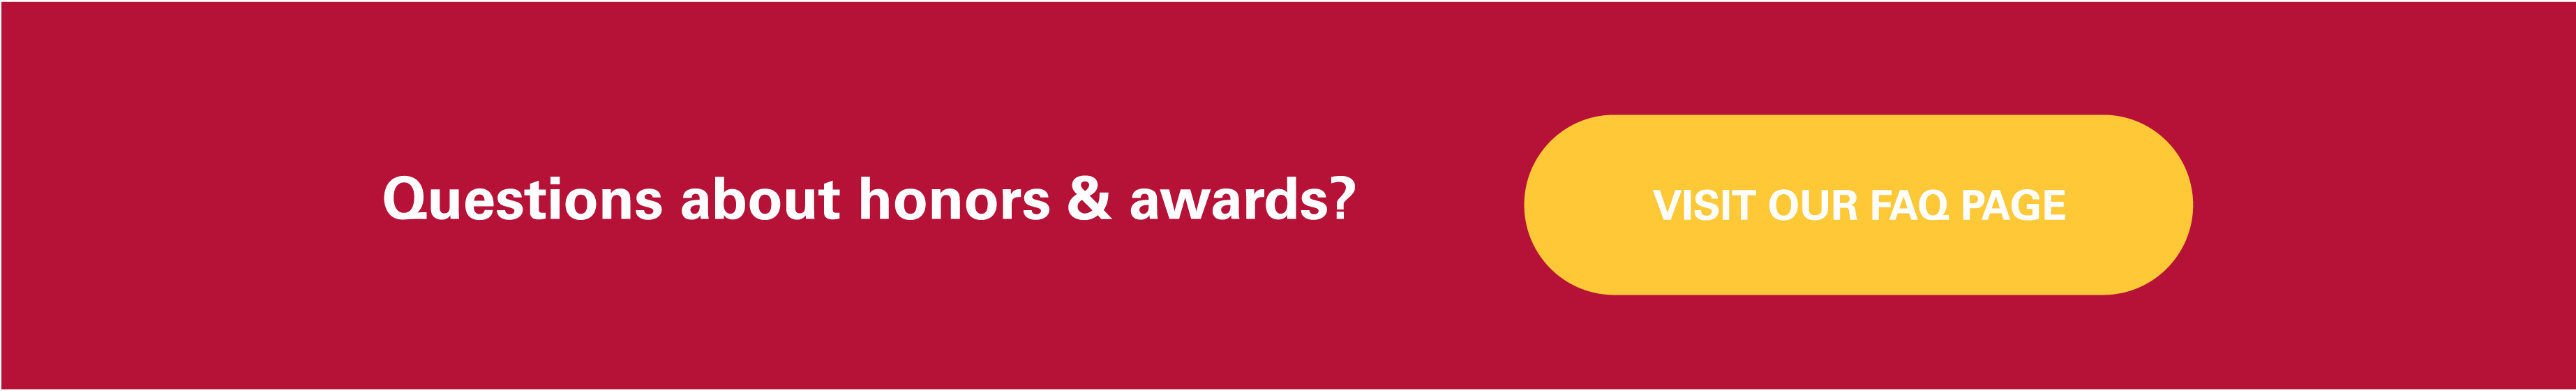 Questions about Honors and Awards? Visit our FAQ page.